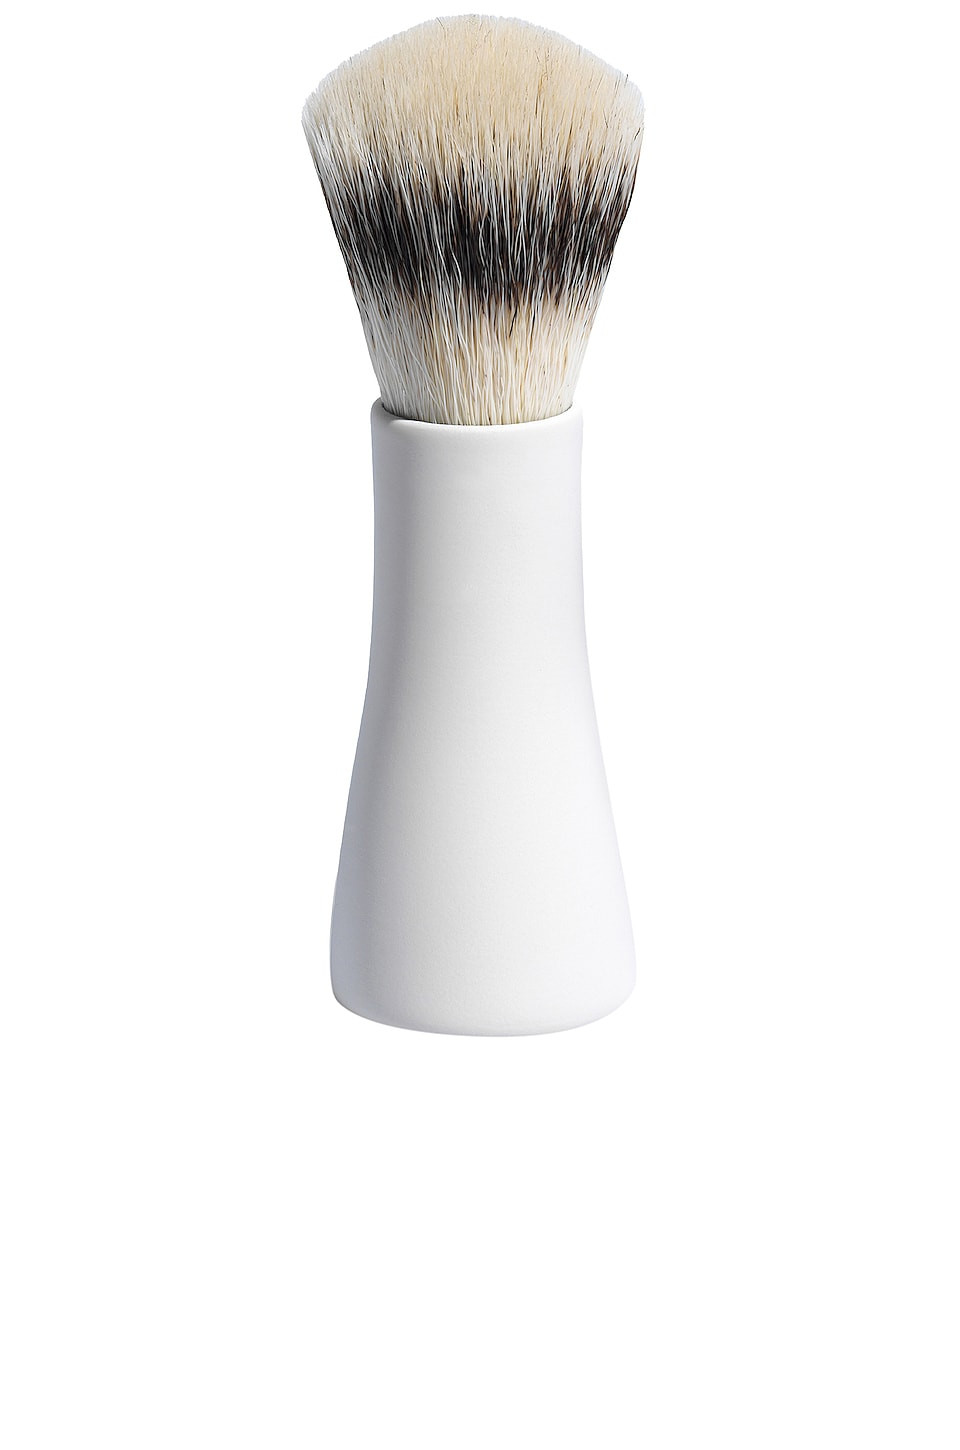 MAVE New York The Shave Brush